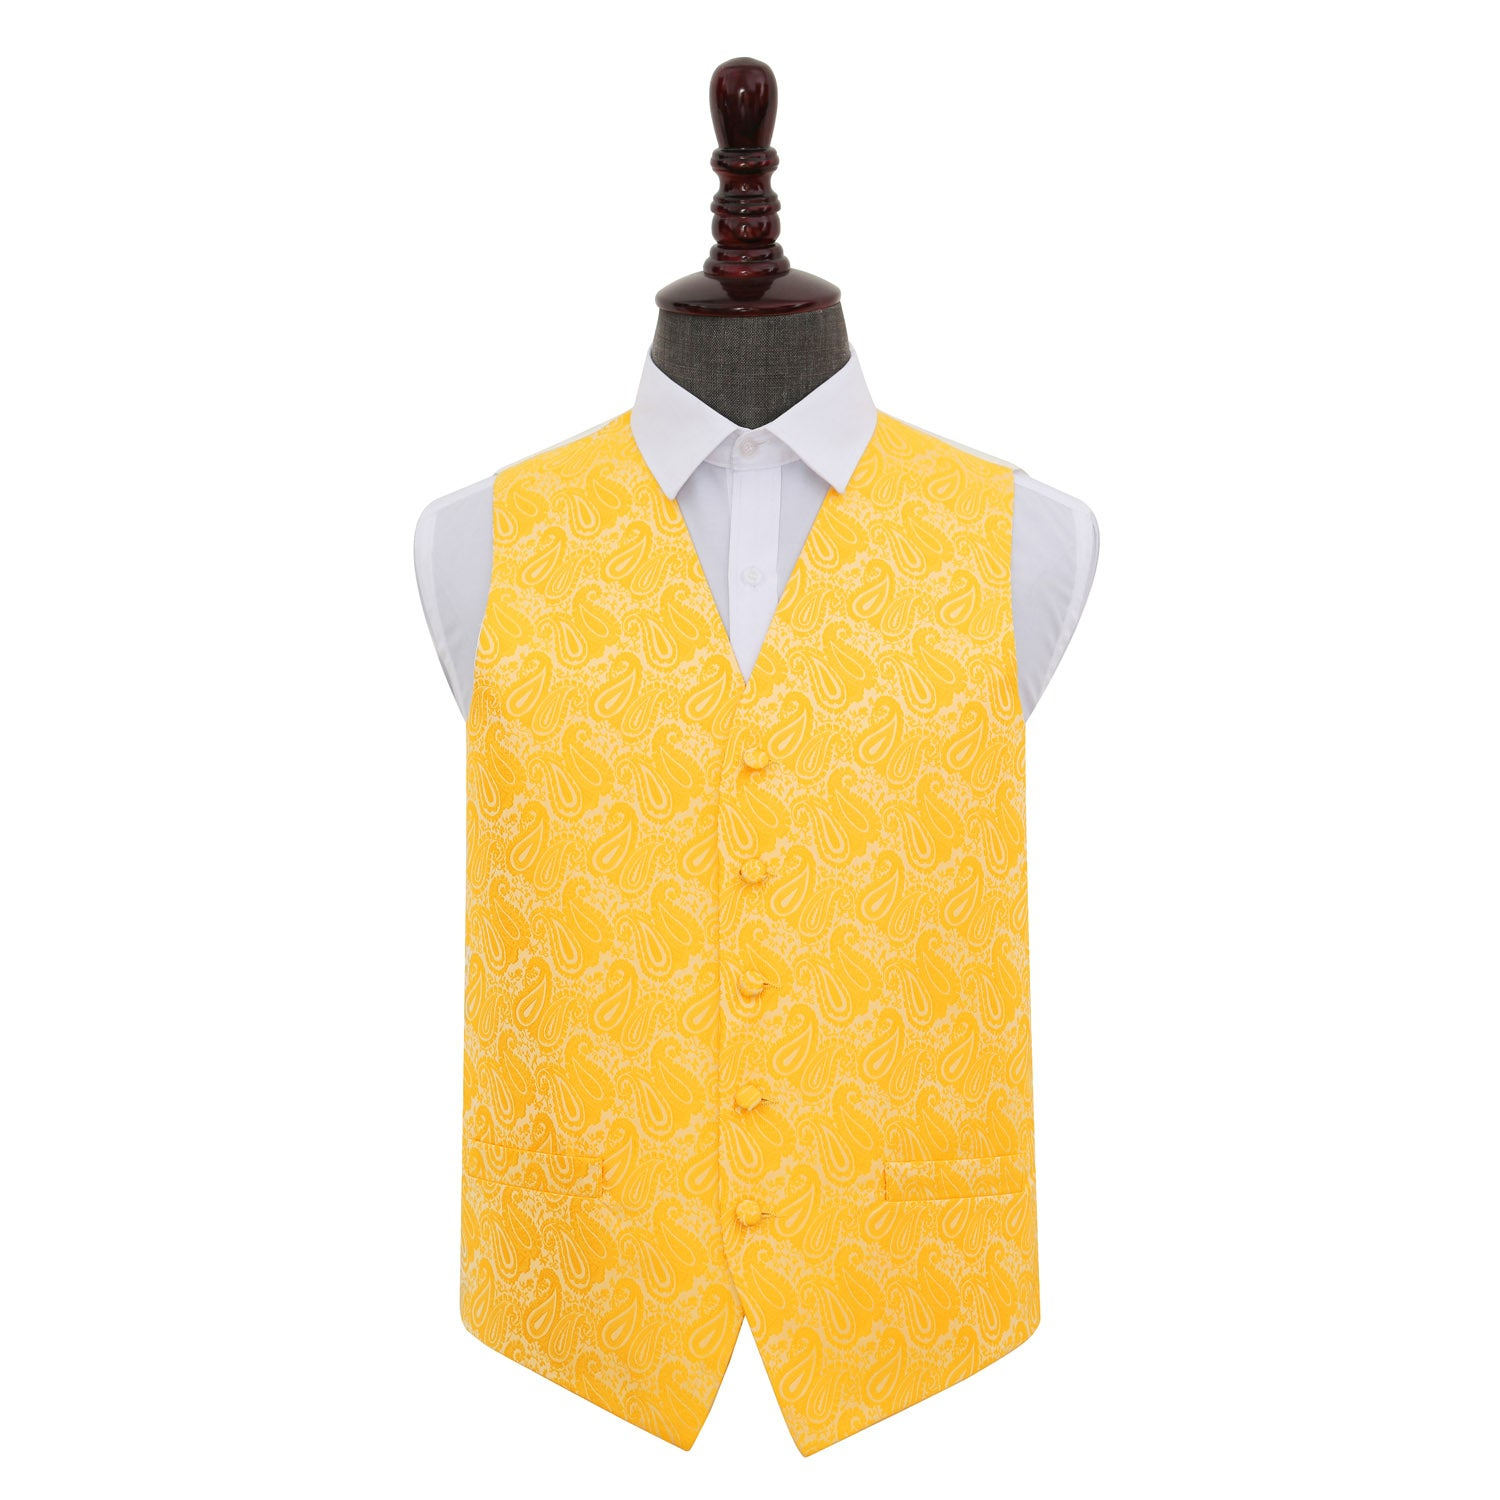 Paisley Waistcoat - Gold, 40', Clothing by Low Cost Gifts